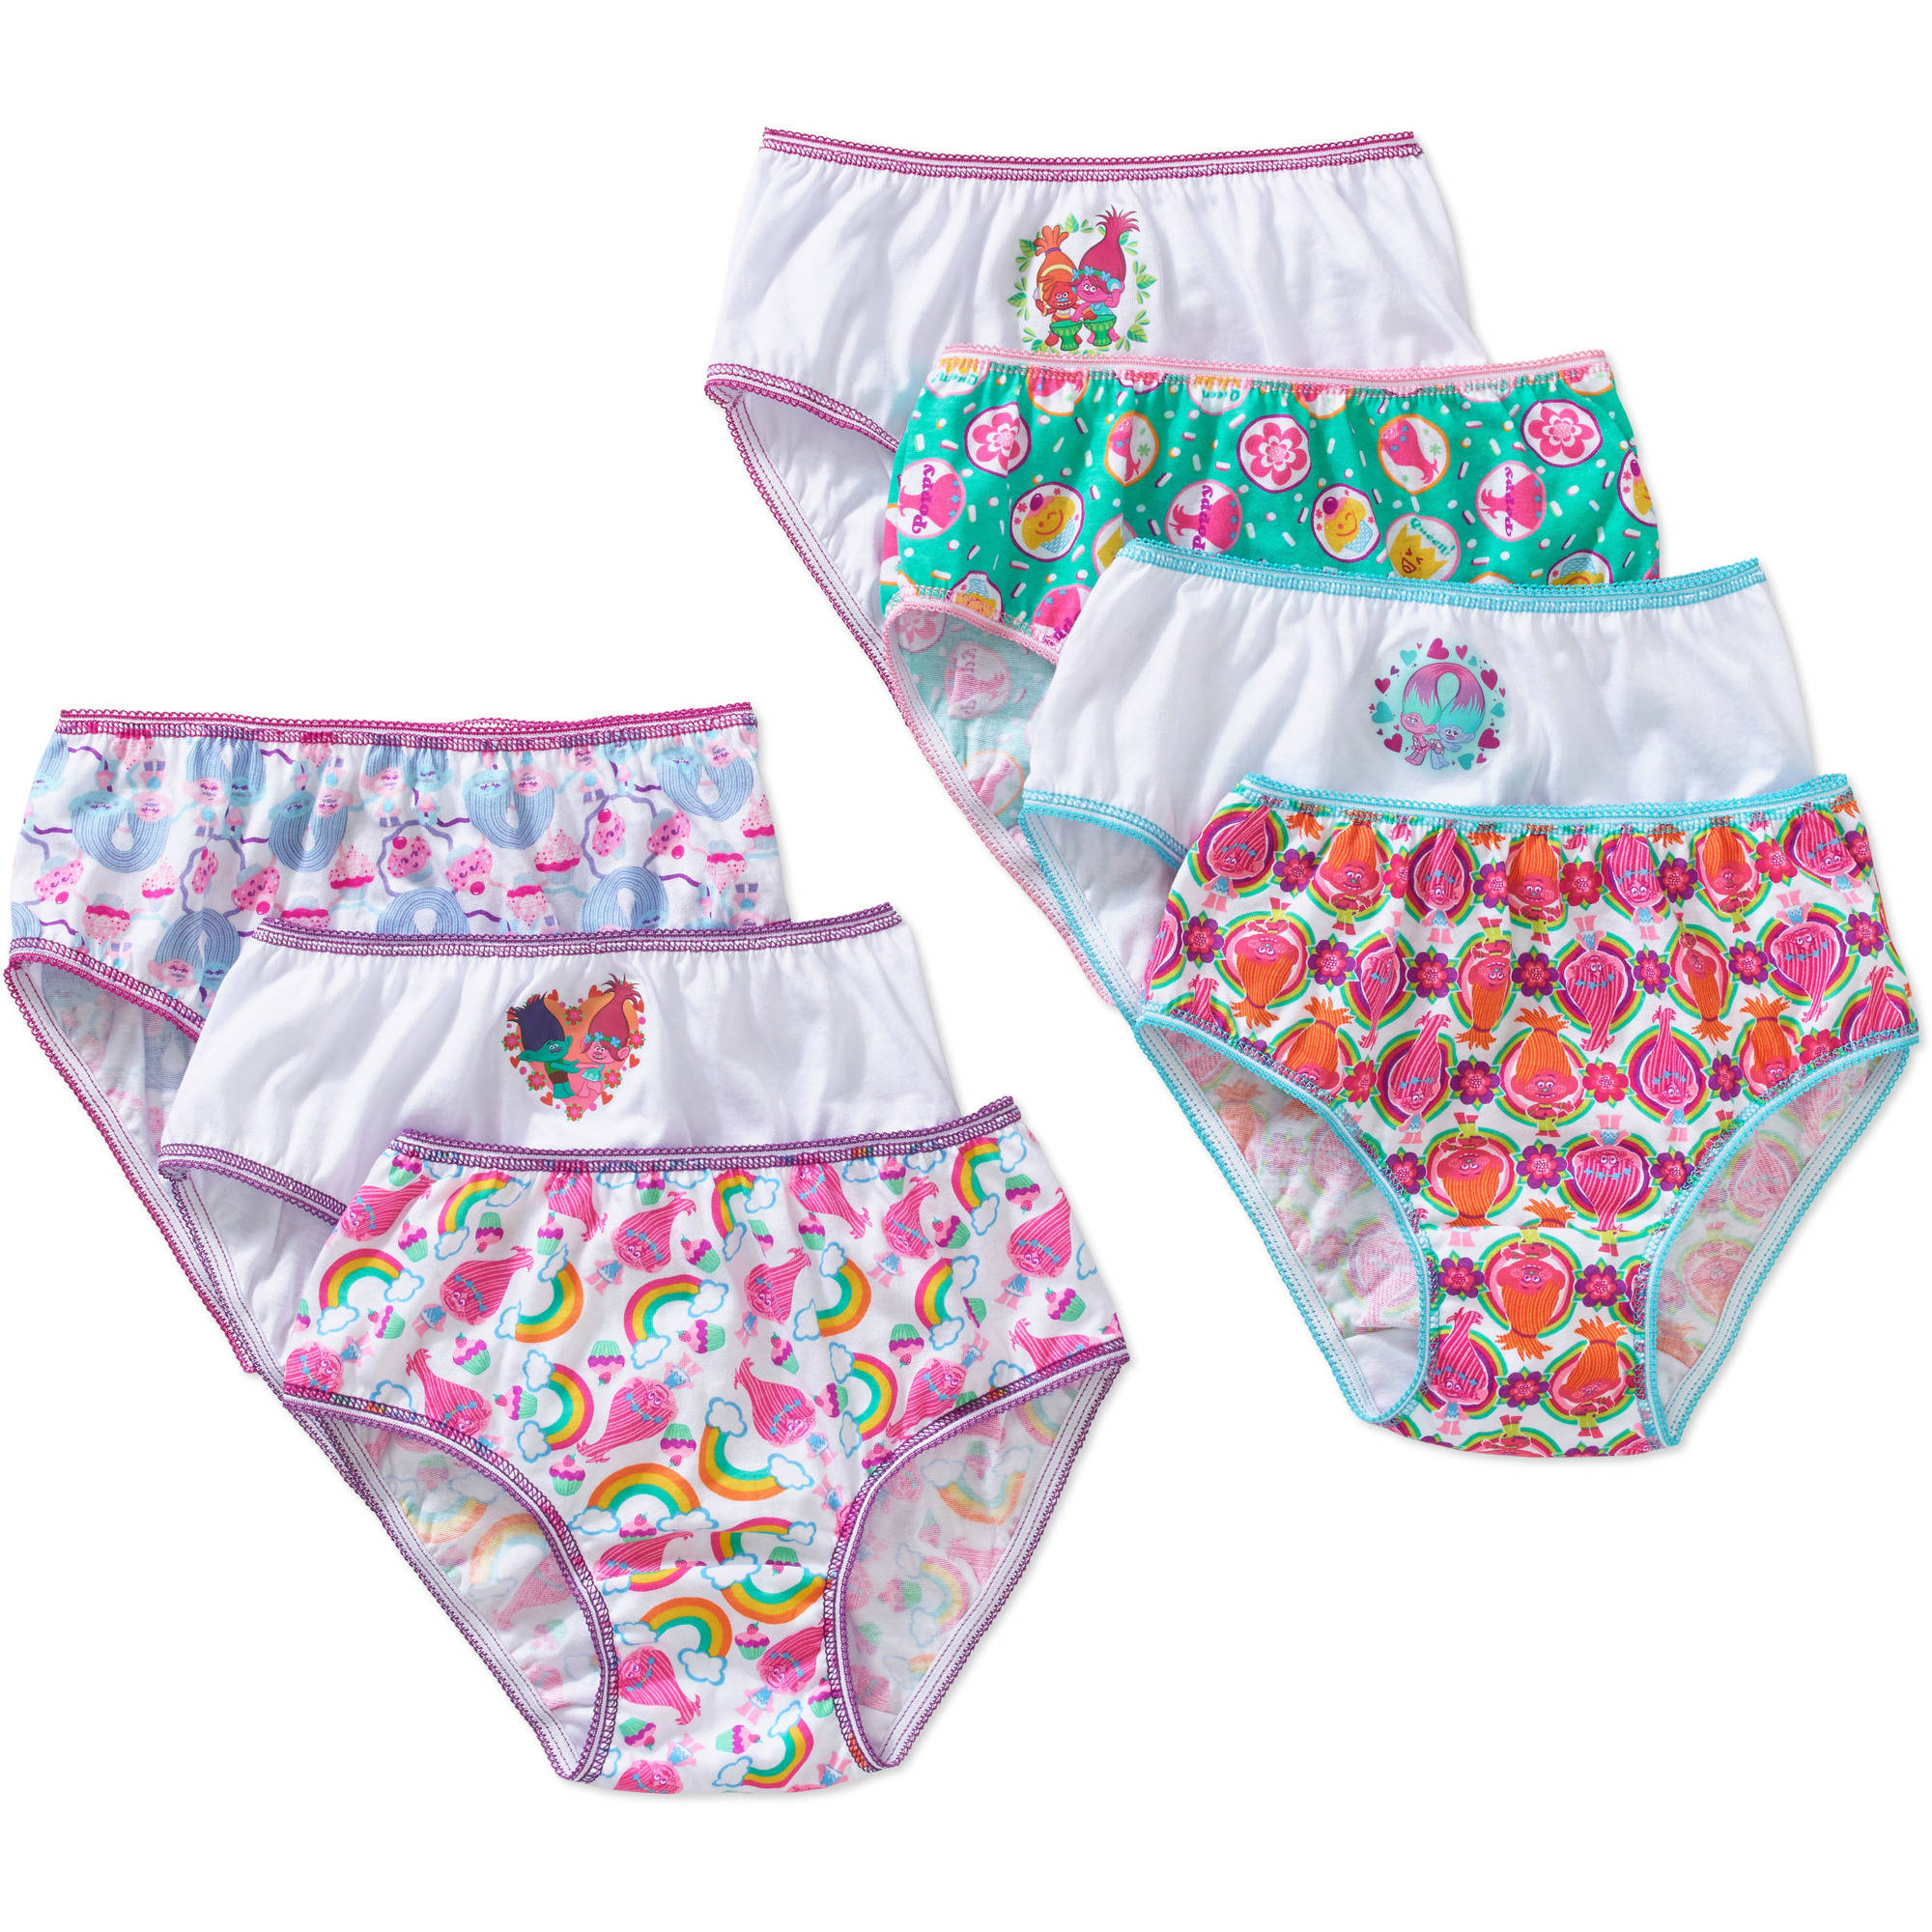 Trolls Girls' Underwear 7 Pack